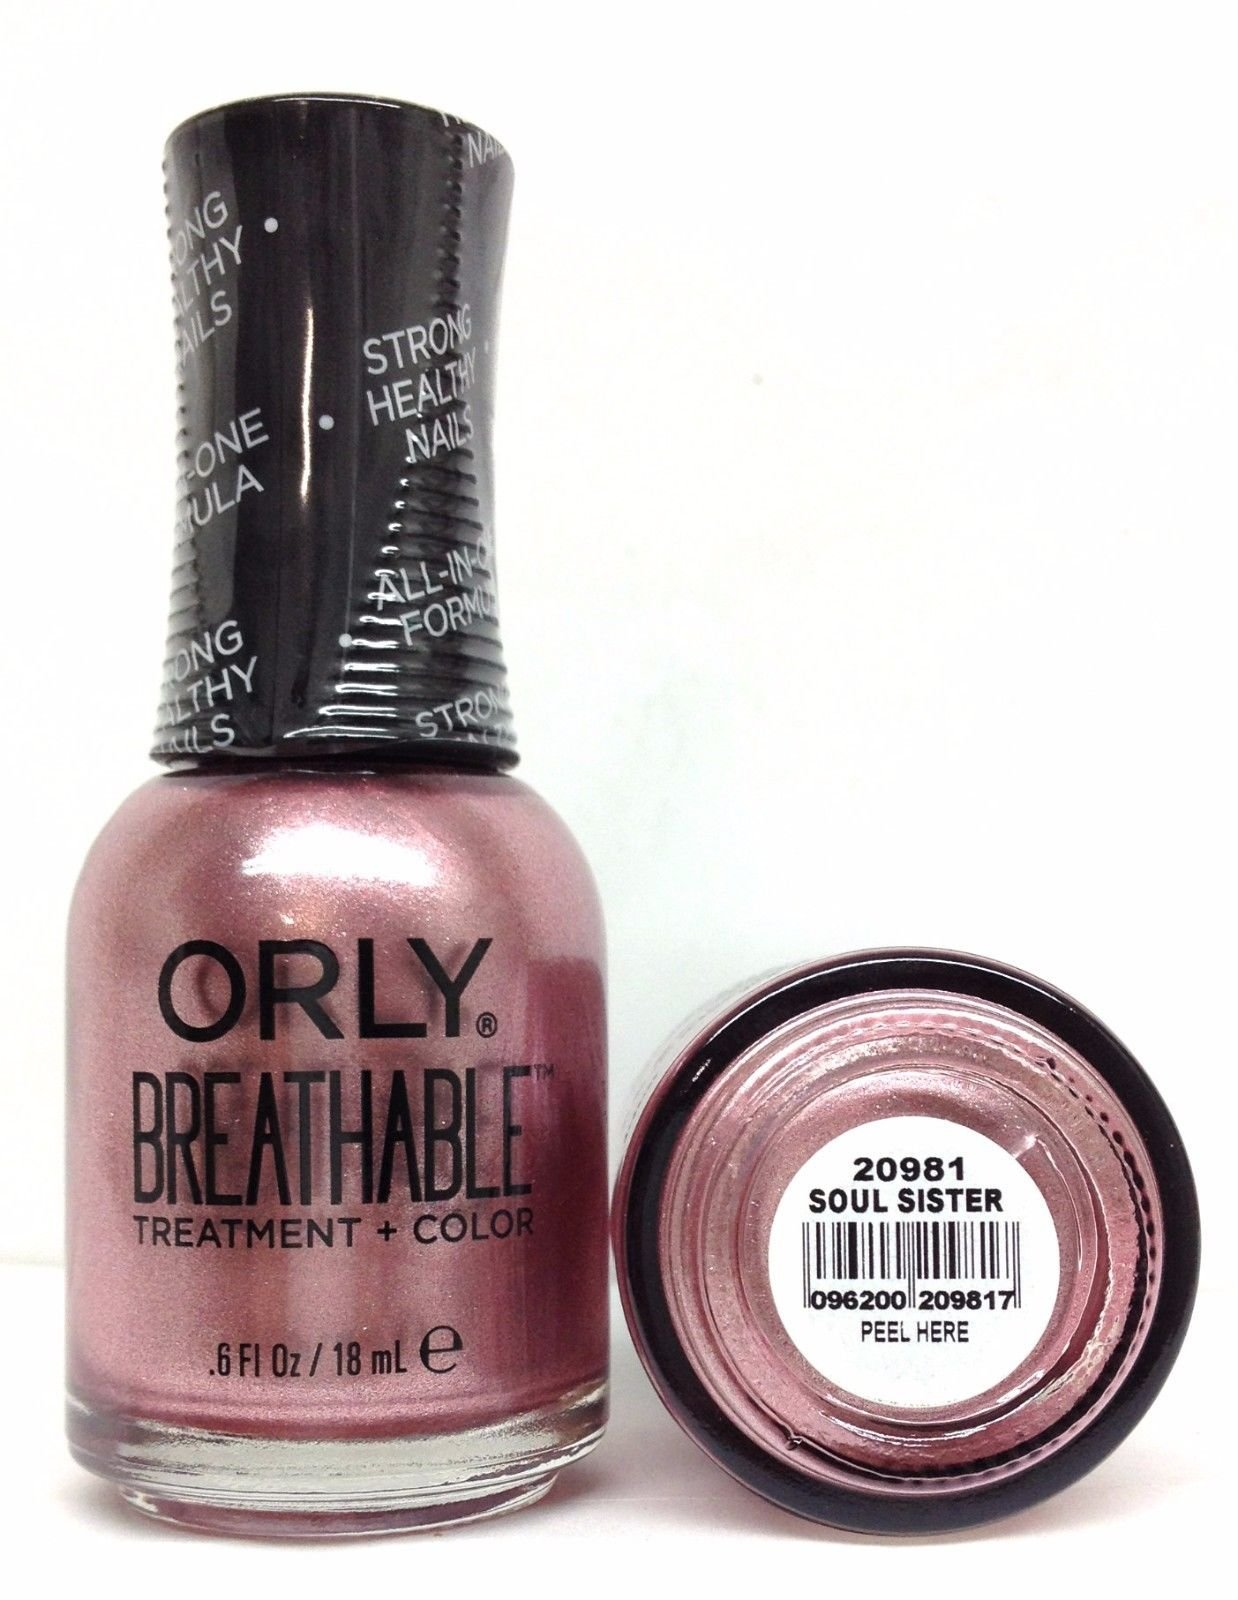 Orly BREATHABLE Treatment + Color Nail Lacquer New 2017 Collection - Pick Any Color (20981 - Soul Sister)